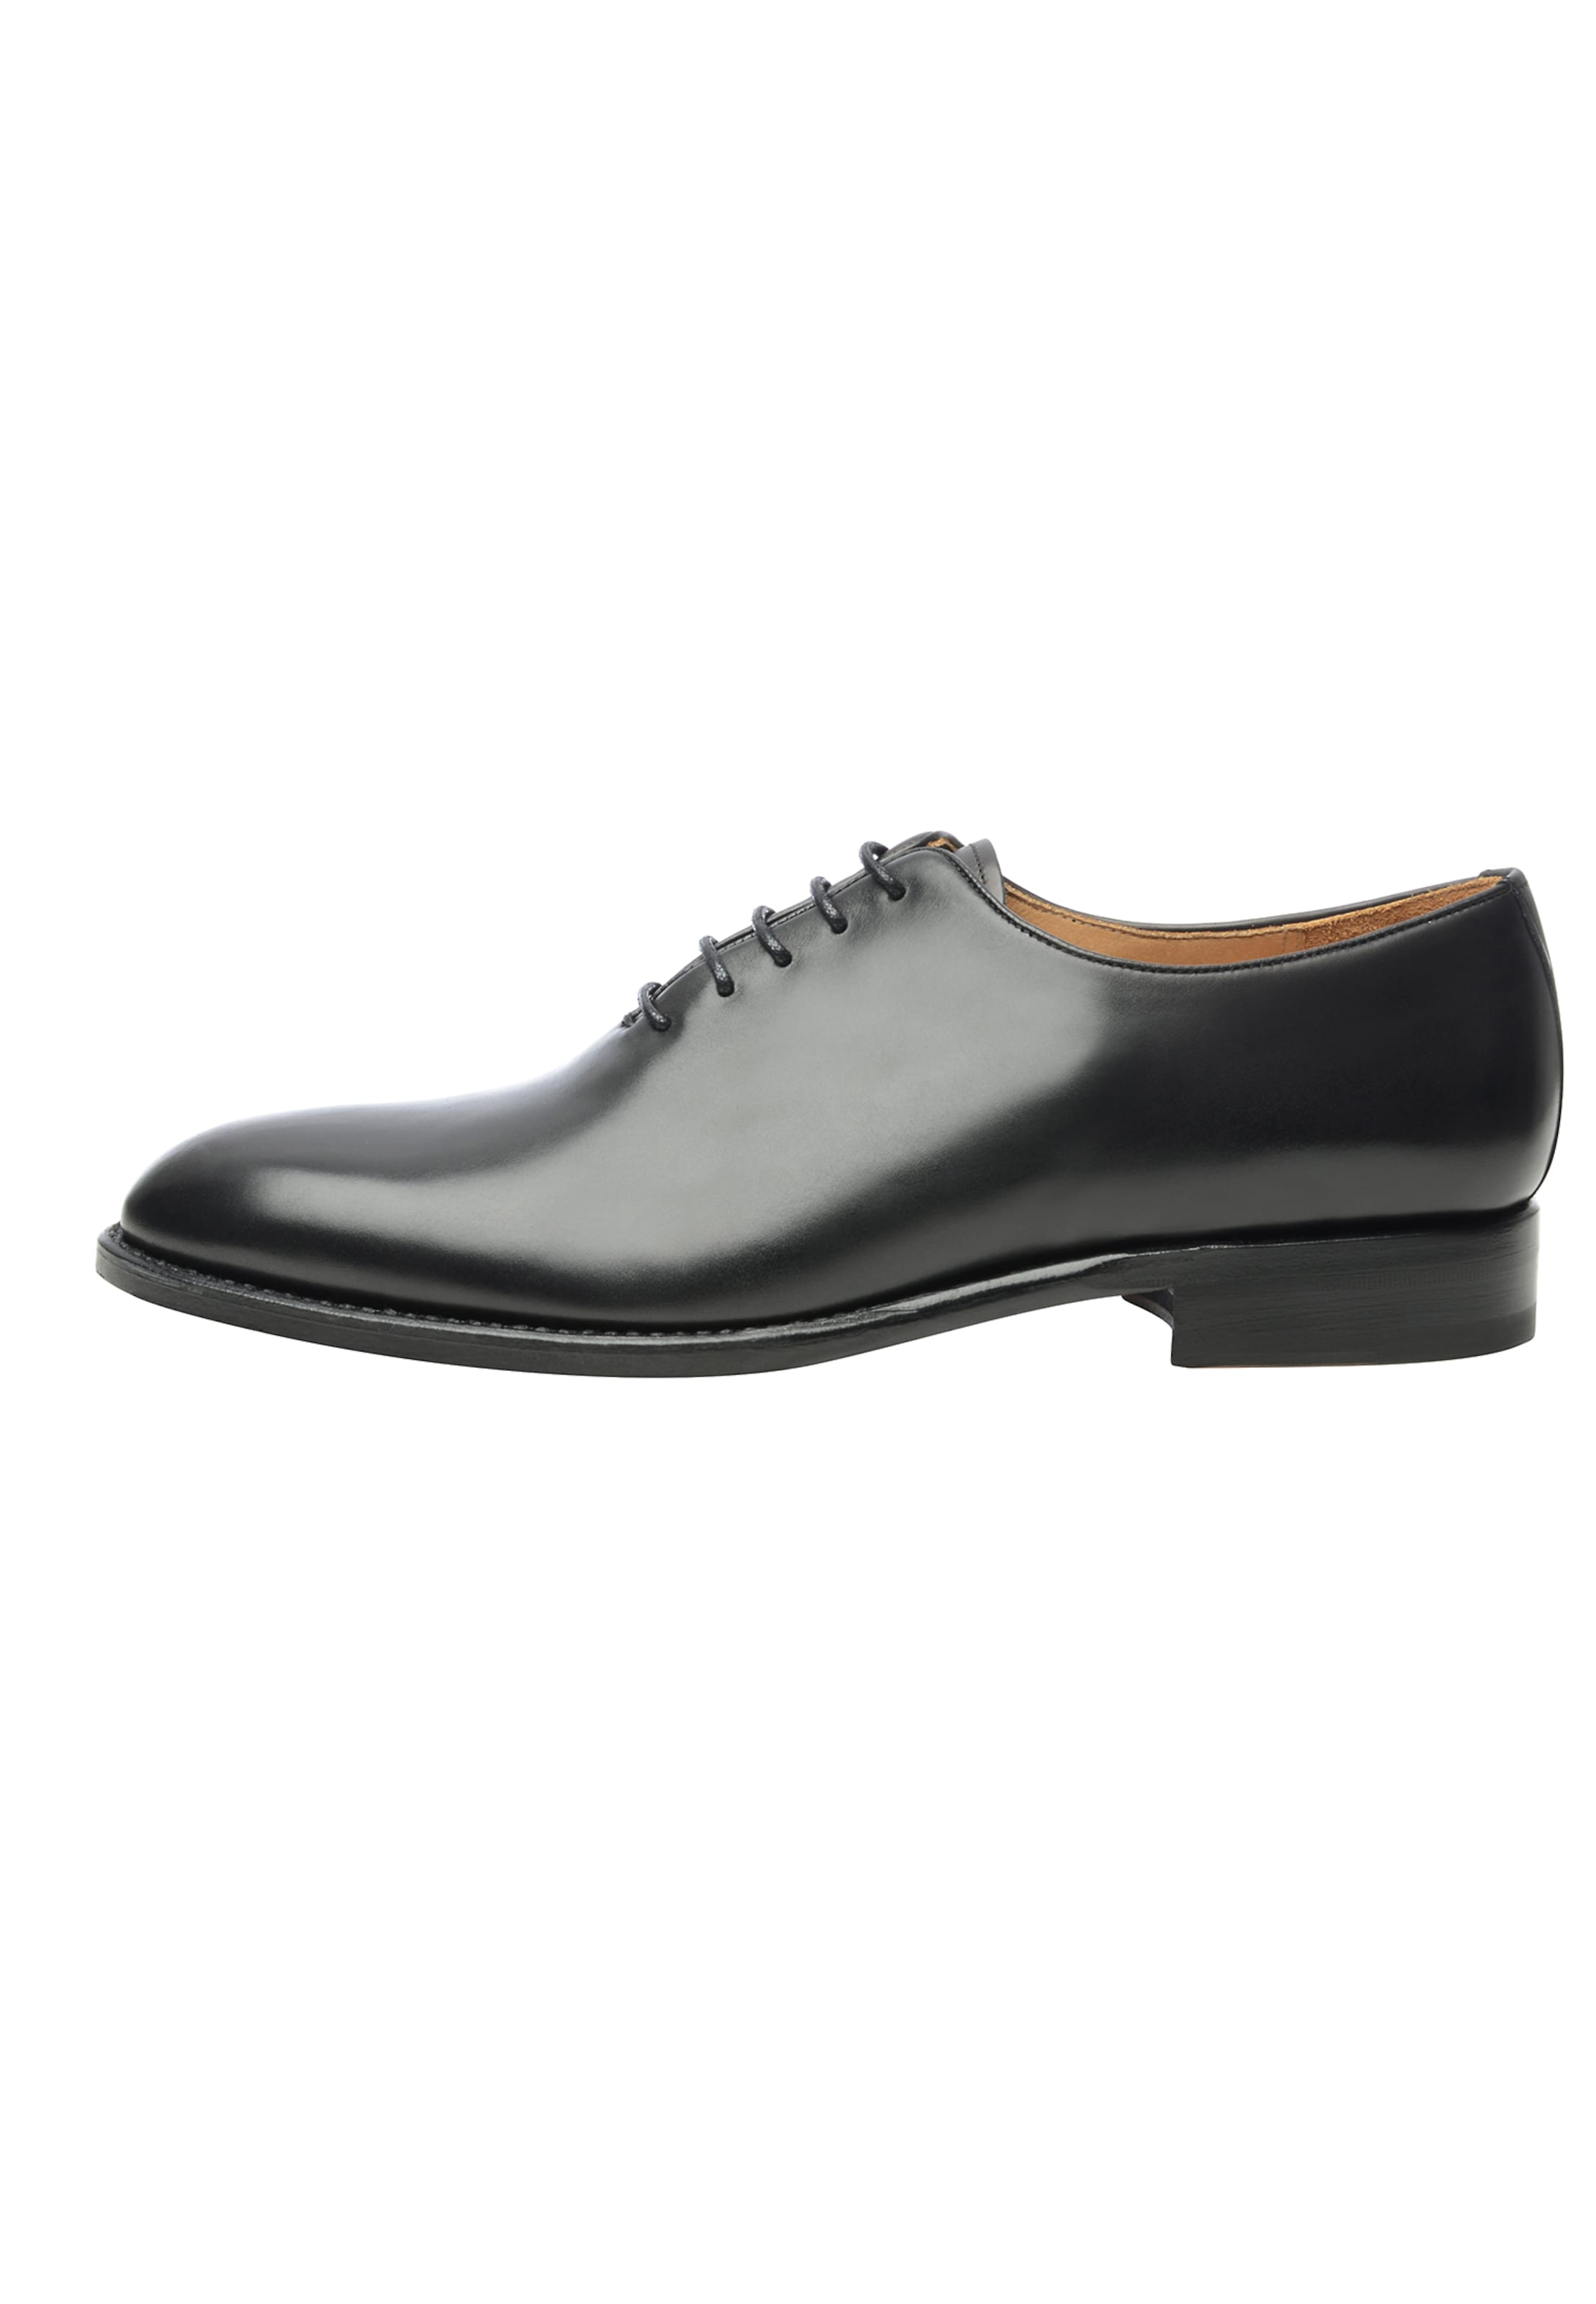 Businessschuhe Shoepassion Schwarz 'no586' In Businessschuhe 'no586' Shoepassion Shoepassion In Schwarz 354jARcLqS